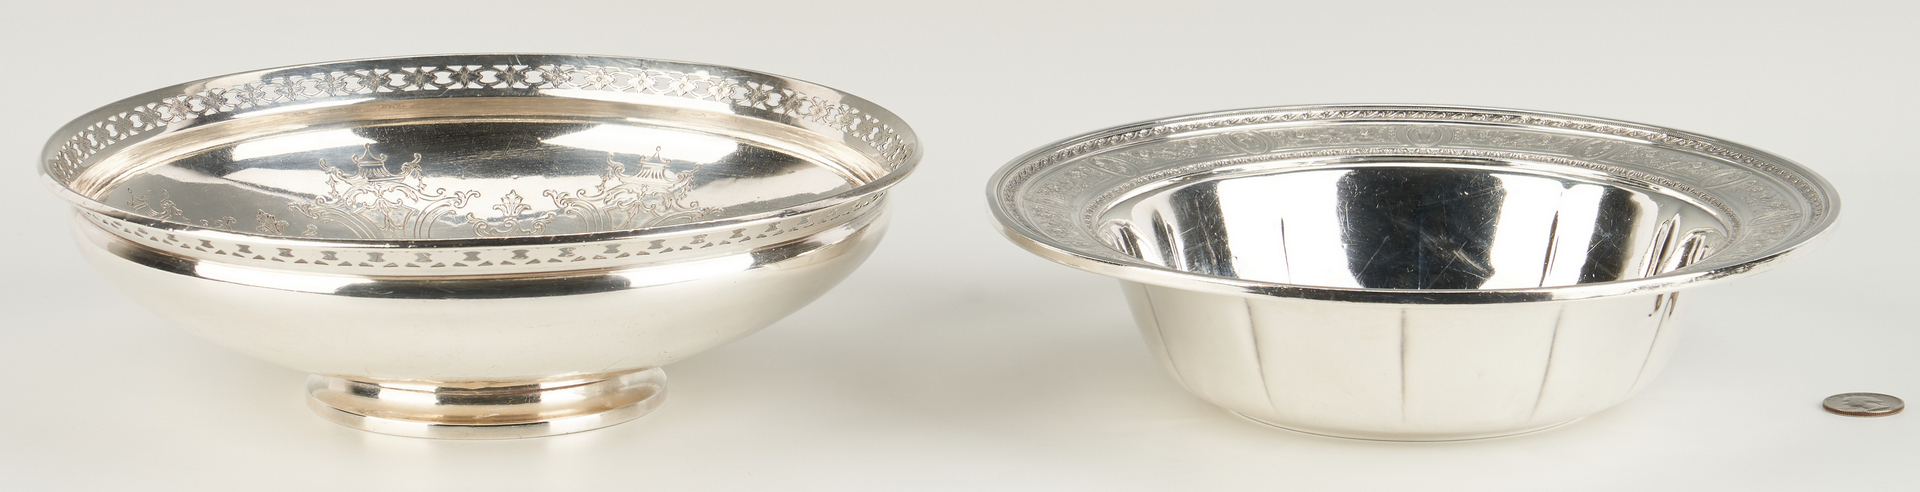 Lot 813: 2 Sterling Bowls incl. Golf Trophy, Belle Meade Country Club